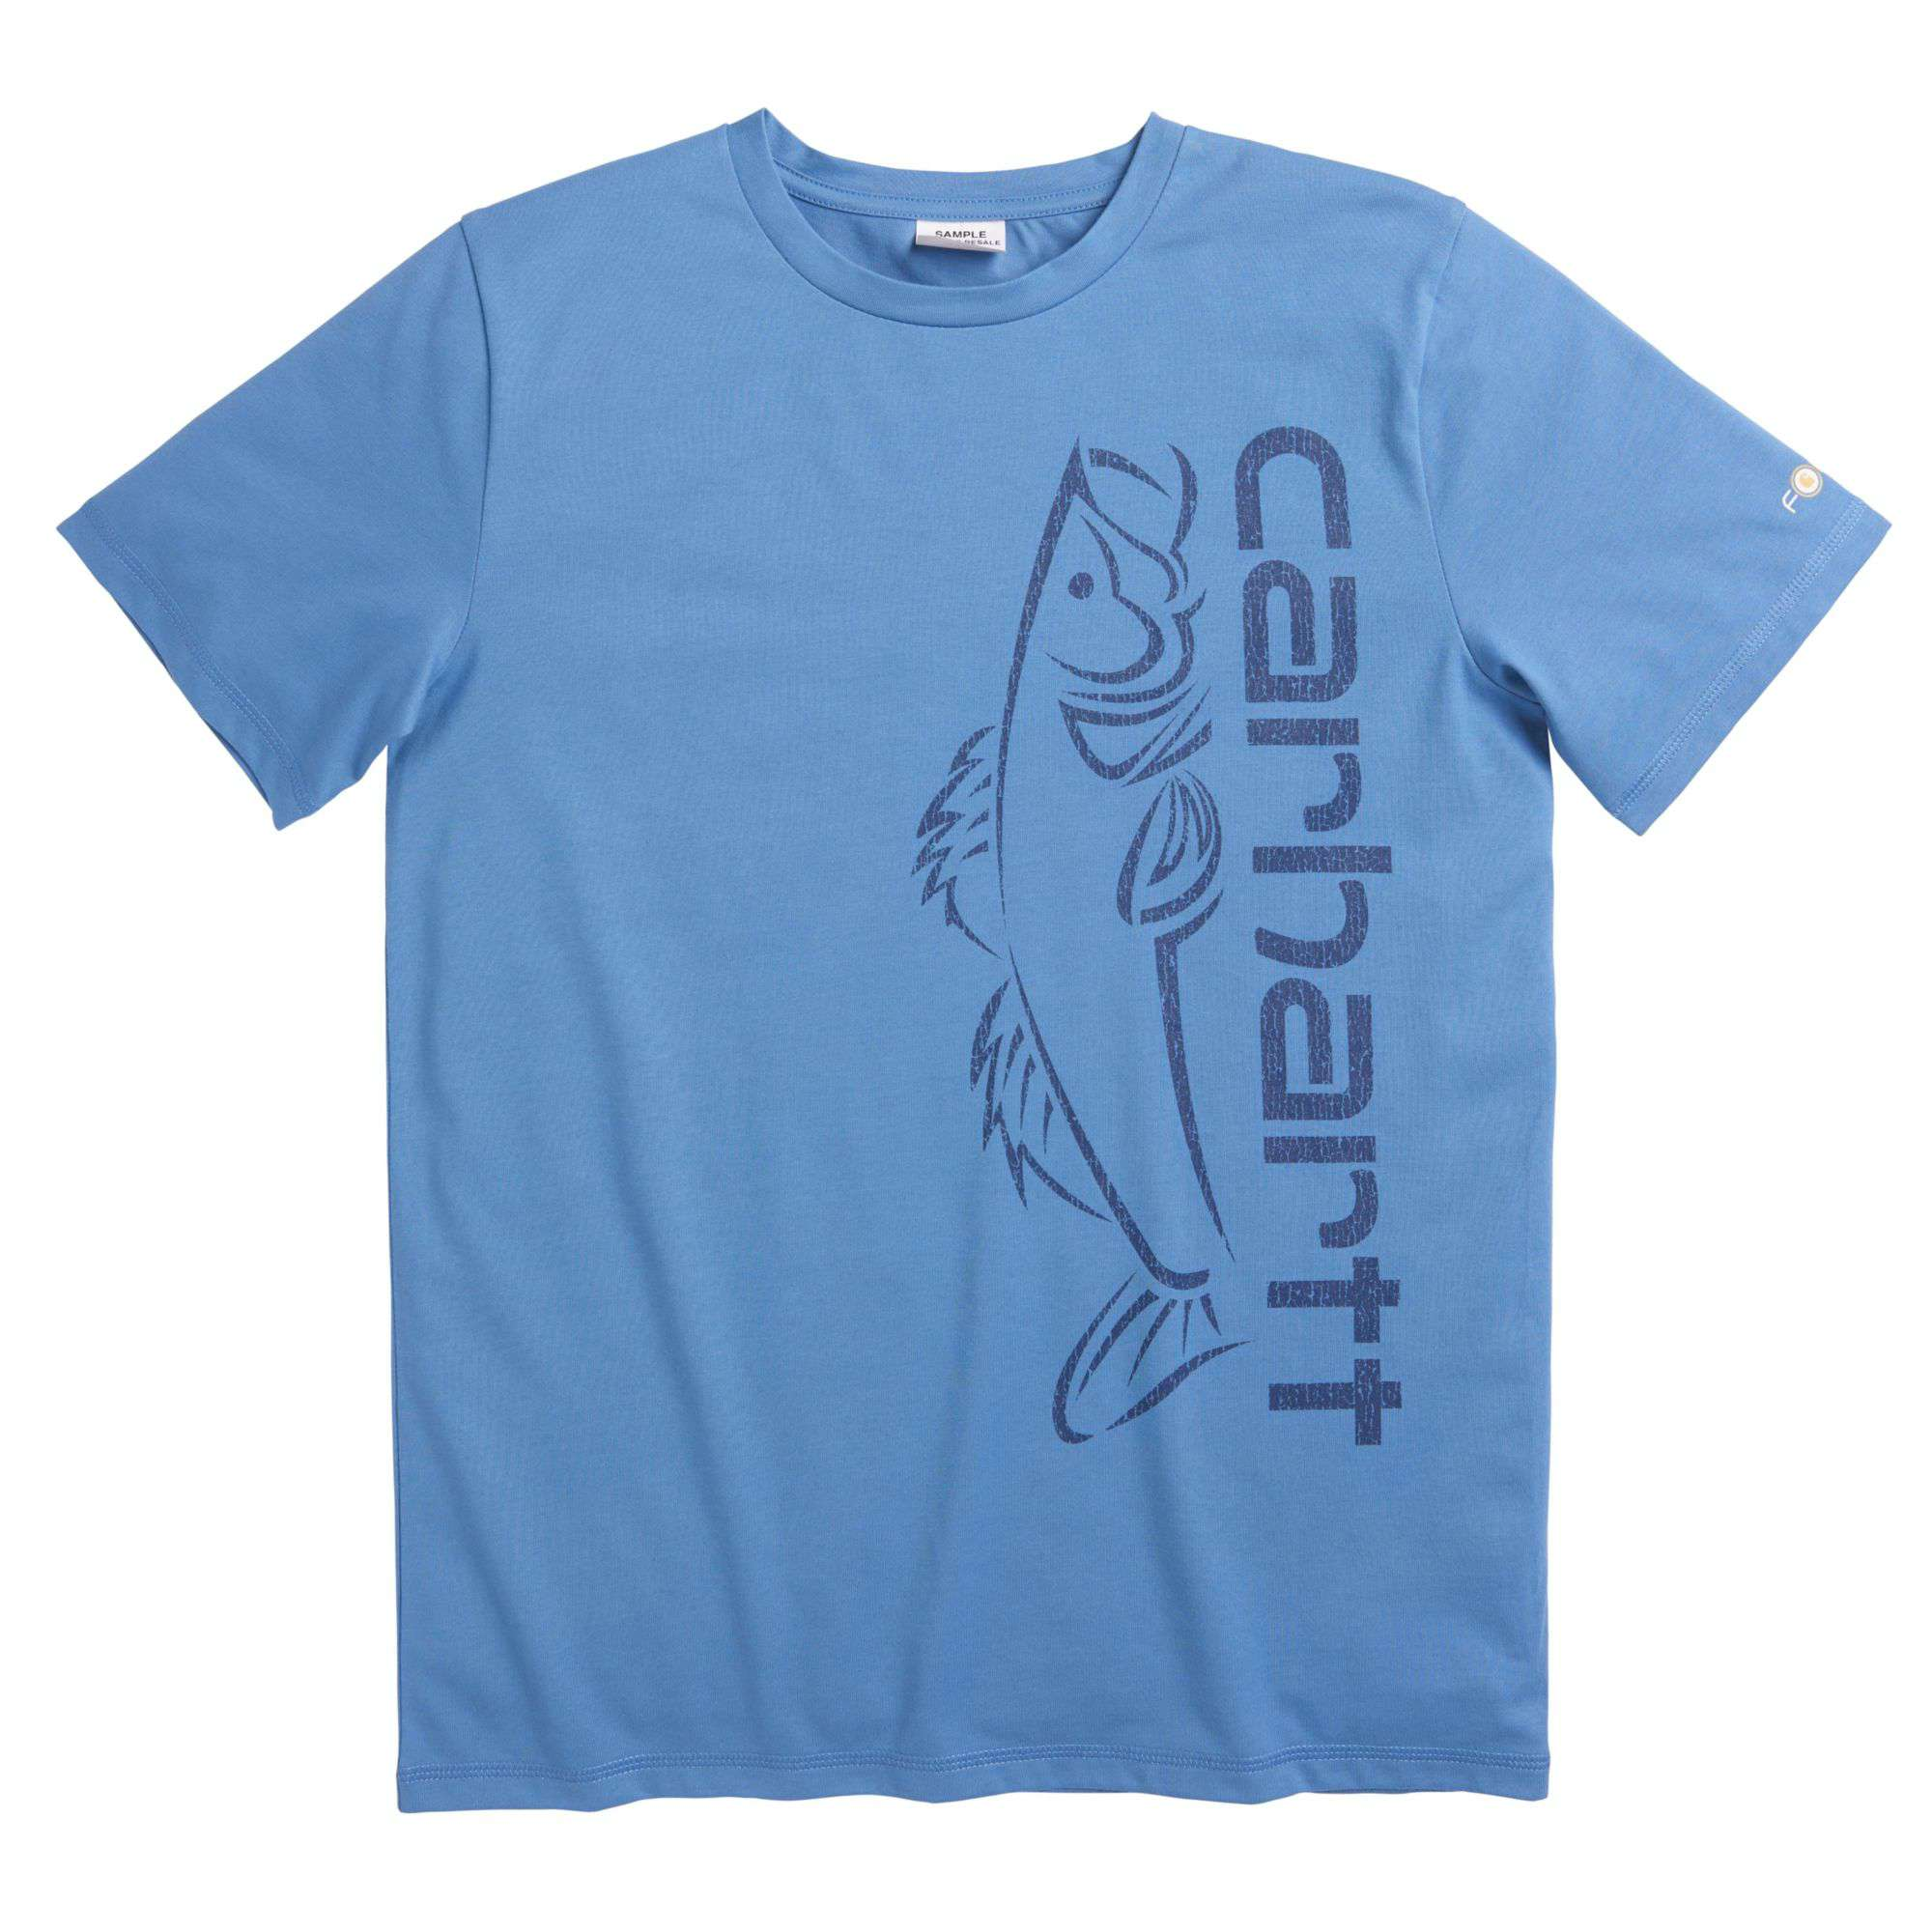 Carhartt Force Vertical Fish Tee